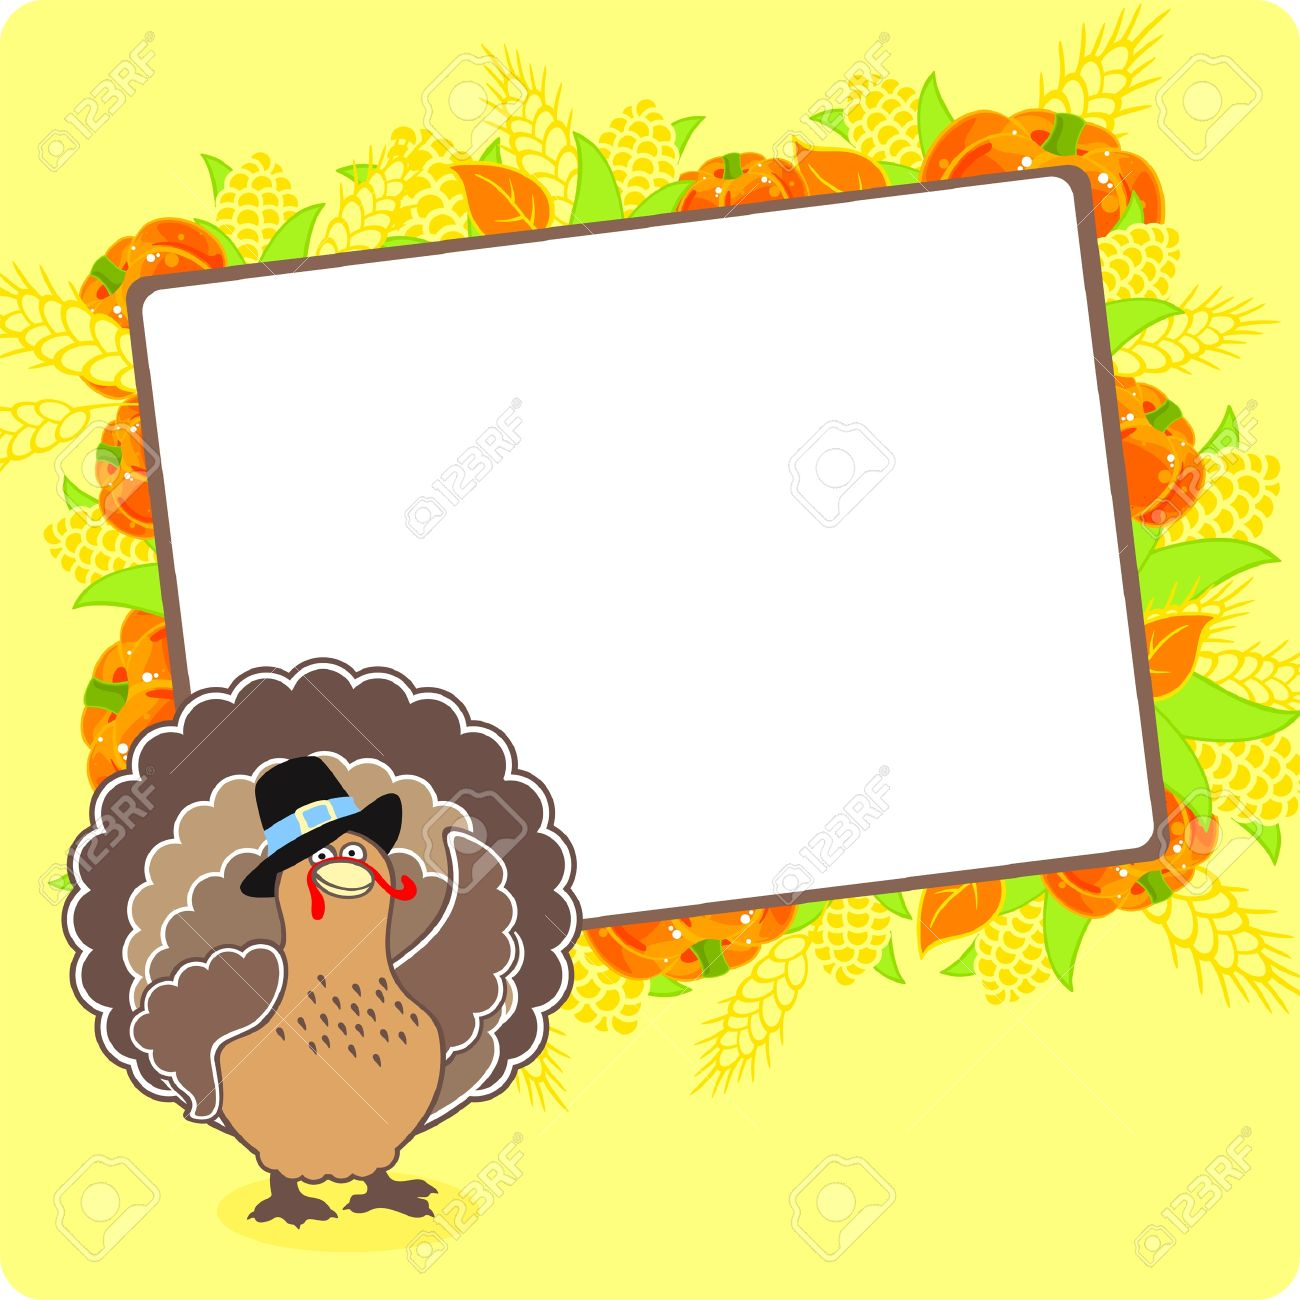 Thanksgiving Frame With A Turkey Royalty Free Cliparts, Vectors, And ...